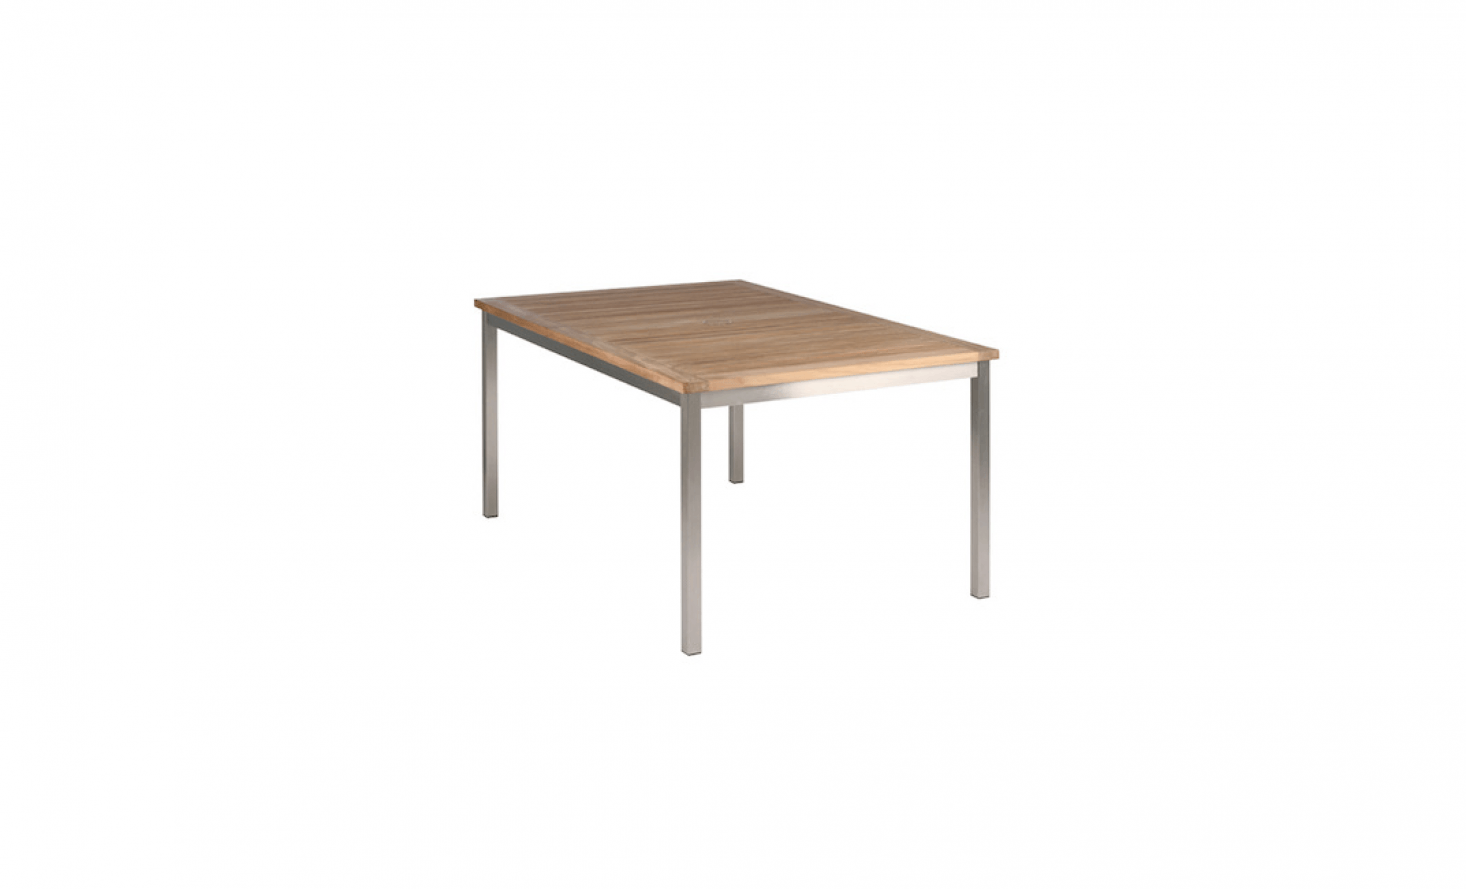 10 Easy Pieces Rectangular Wooden Dining Tables Gardenista